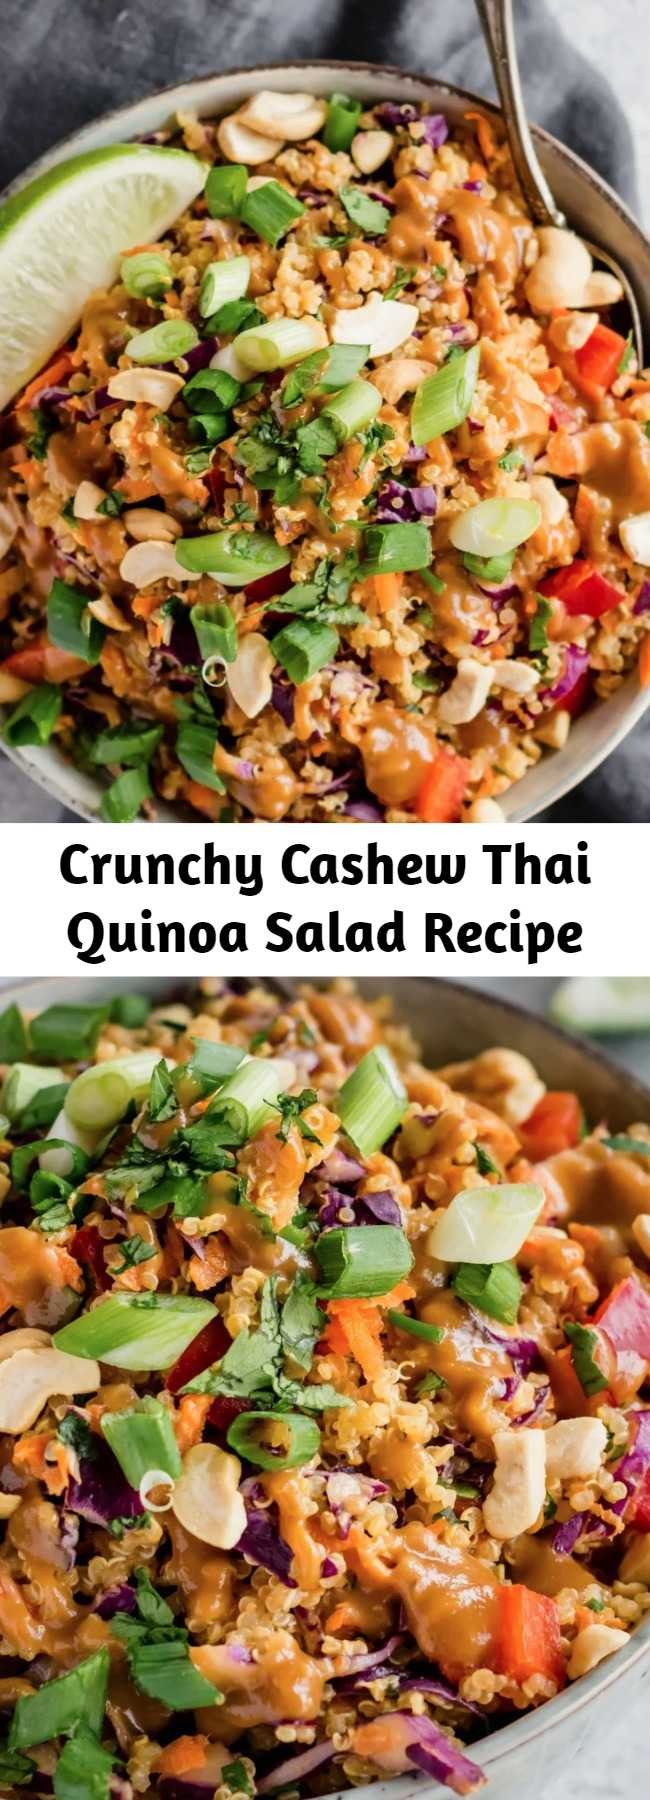 Crunchy Cashew Thai Quinoa Salad Recipe - Delicious vegan and easily gluten-free salad with Thai flavors and a perfect crunch. It's even better the next day! #veganrecipe #veganfood #thaifood #vegetarian #plantbased #healthylunch #lunchideas #mealprep #mealprepping #glutenfree #glutenfreerecipes